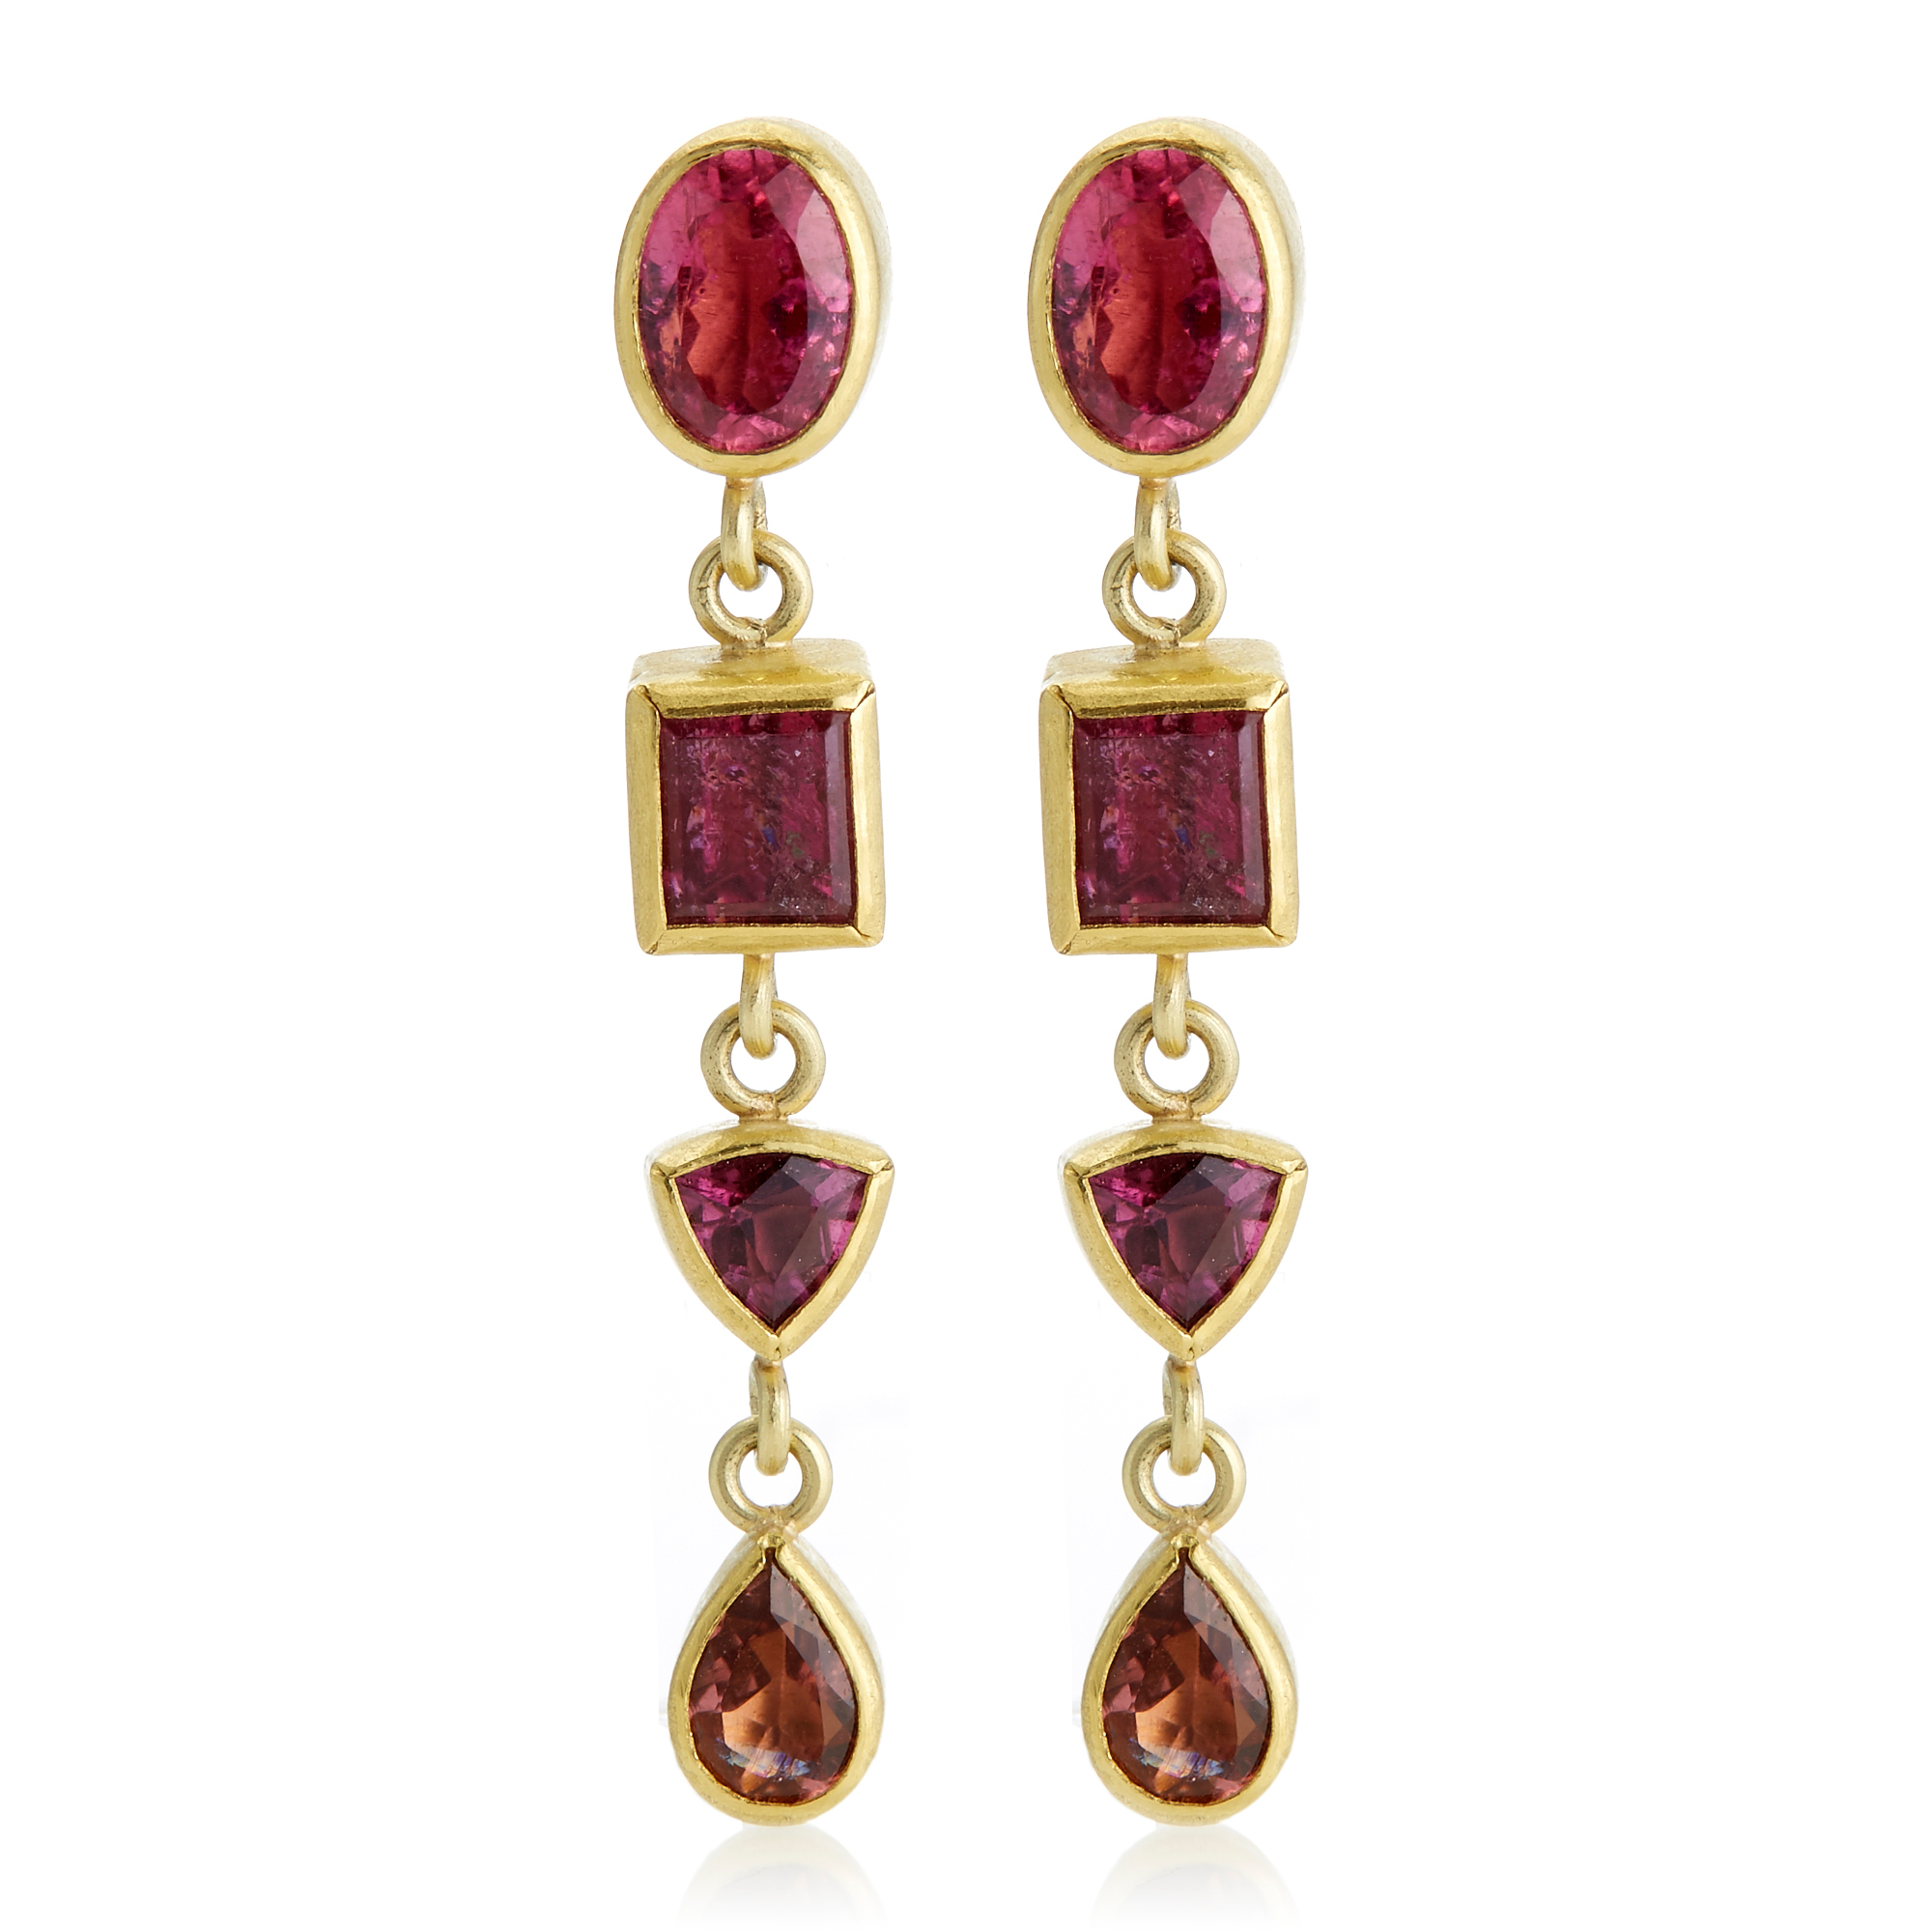 Petra Class Pink Tourmaline Geometric Drop Earrings